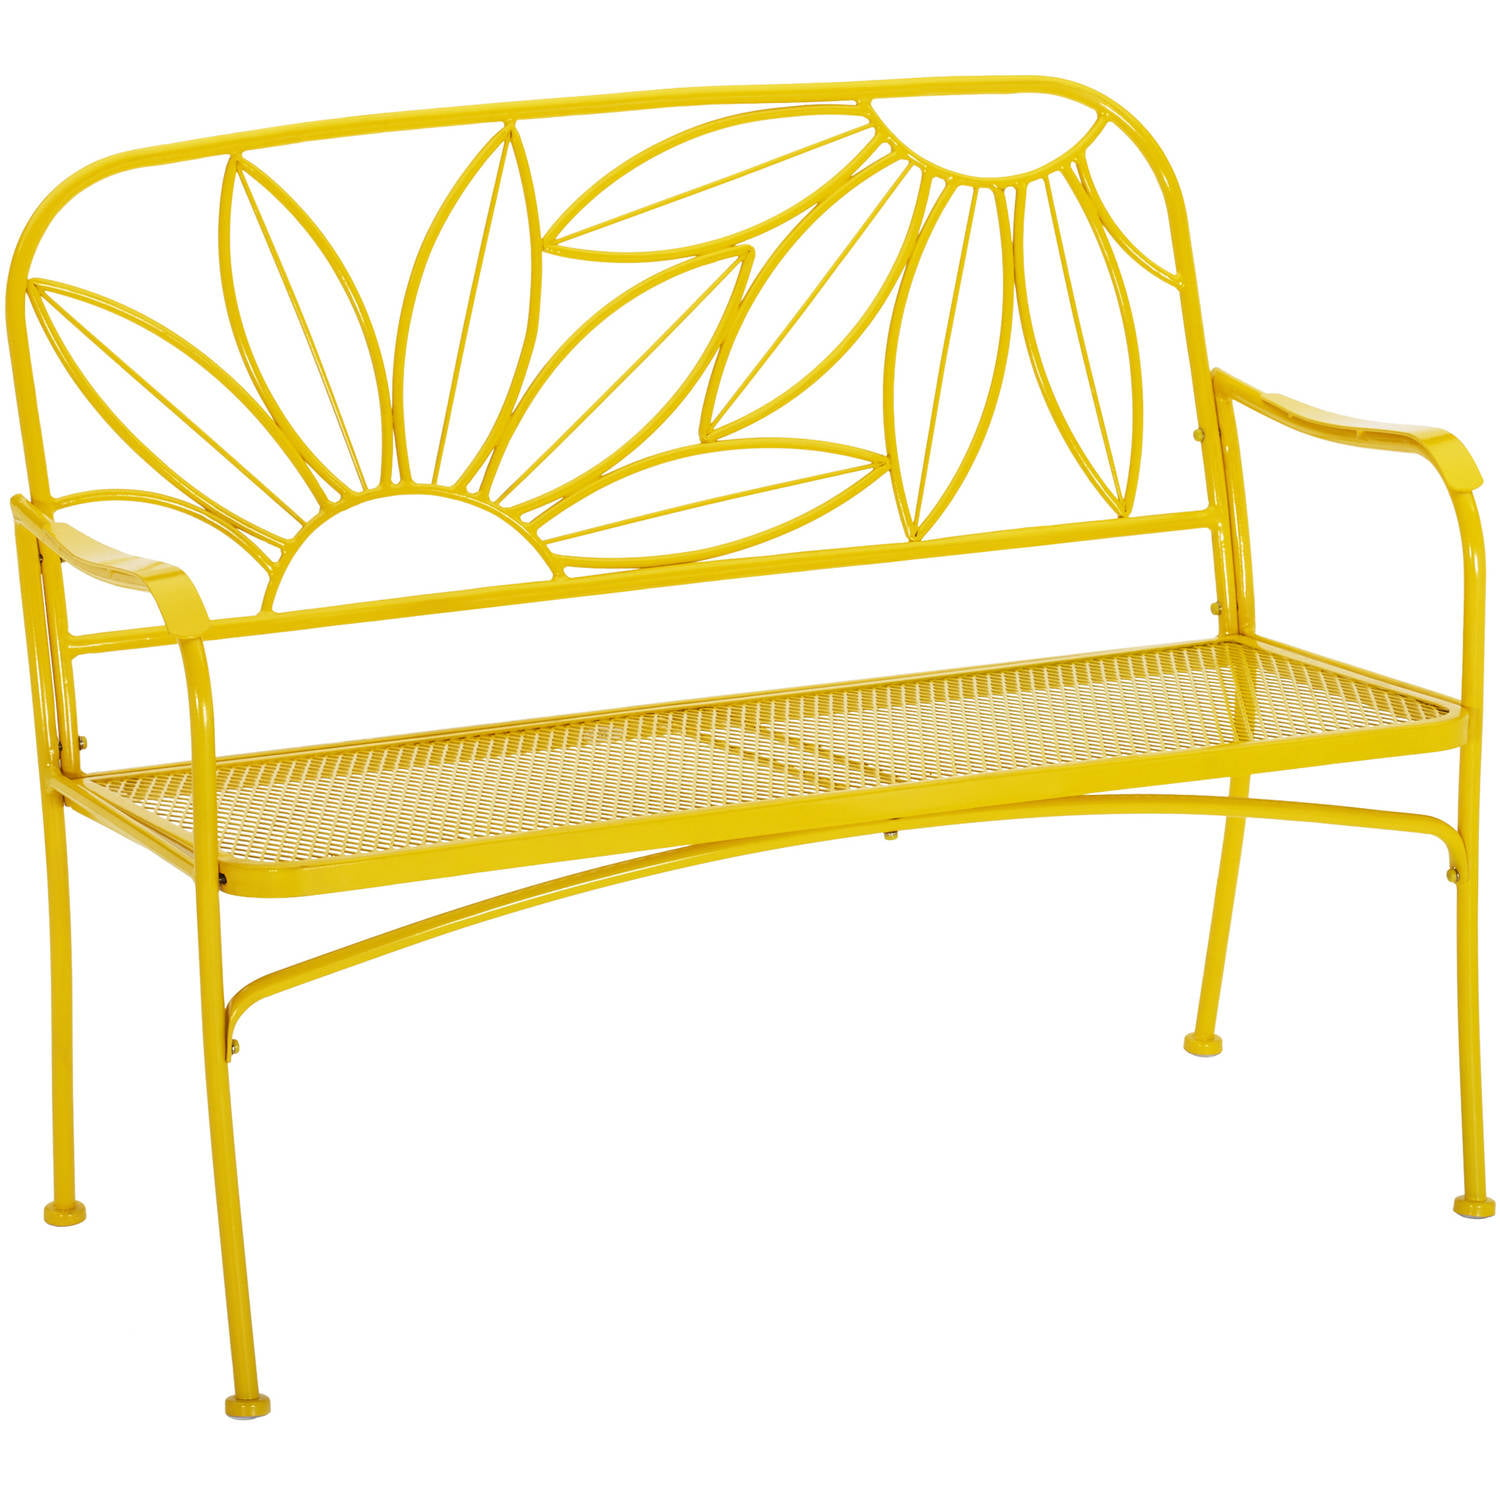 Mainstays Hello Sunny Outdoor Patio Bench, Yellow by Generic